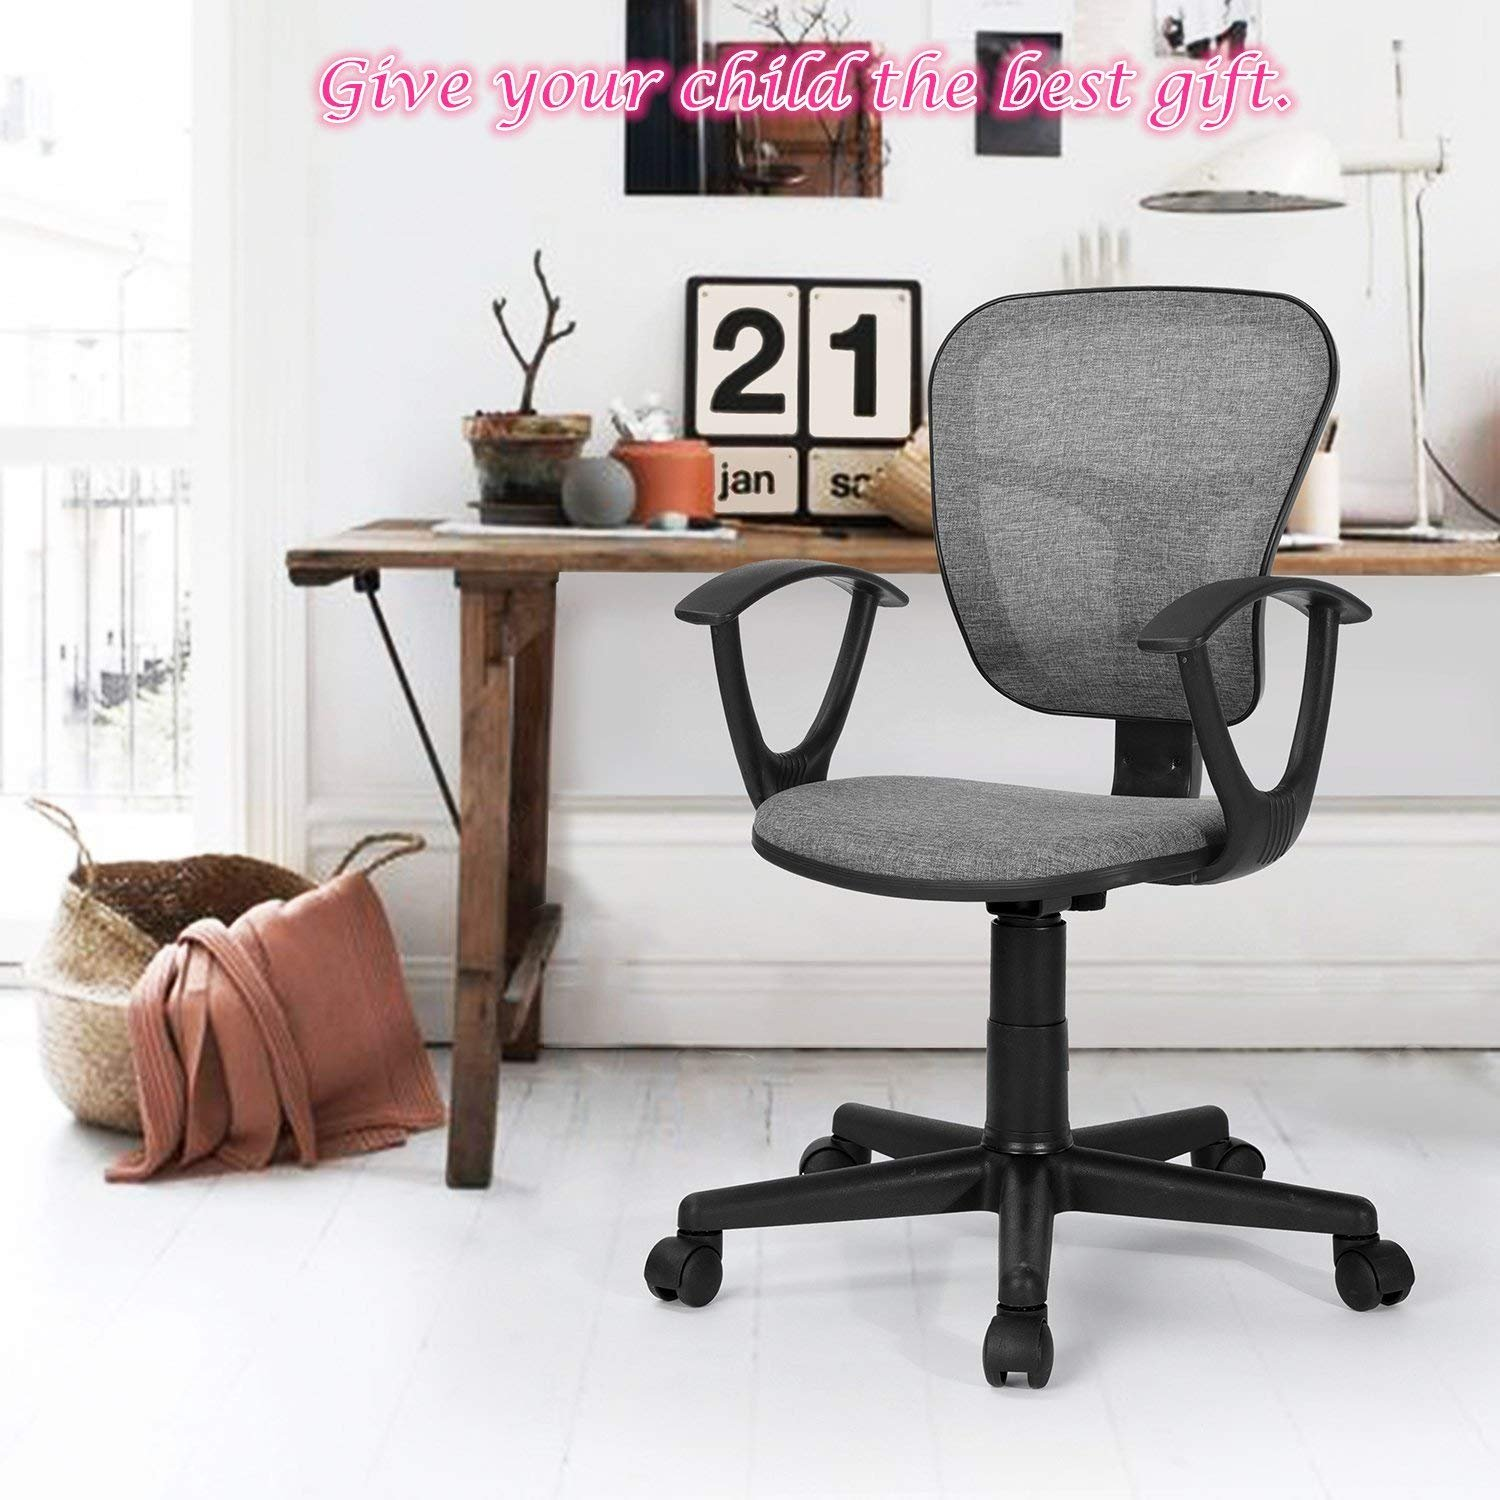 DHHX FLYING ARM FABRIC-14 Grey Coavas Kids Desk Chair Mid-Back Mesh Task Study Chair Adjustable Height Ergonomical Chair for Students Teens Children Home Office Computer Gaming Studying